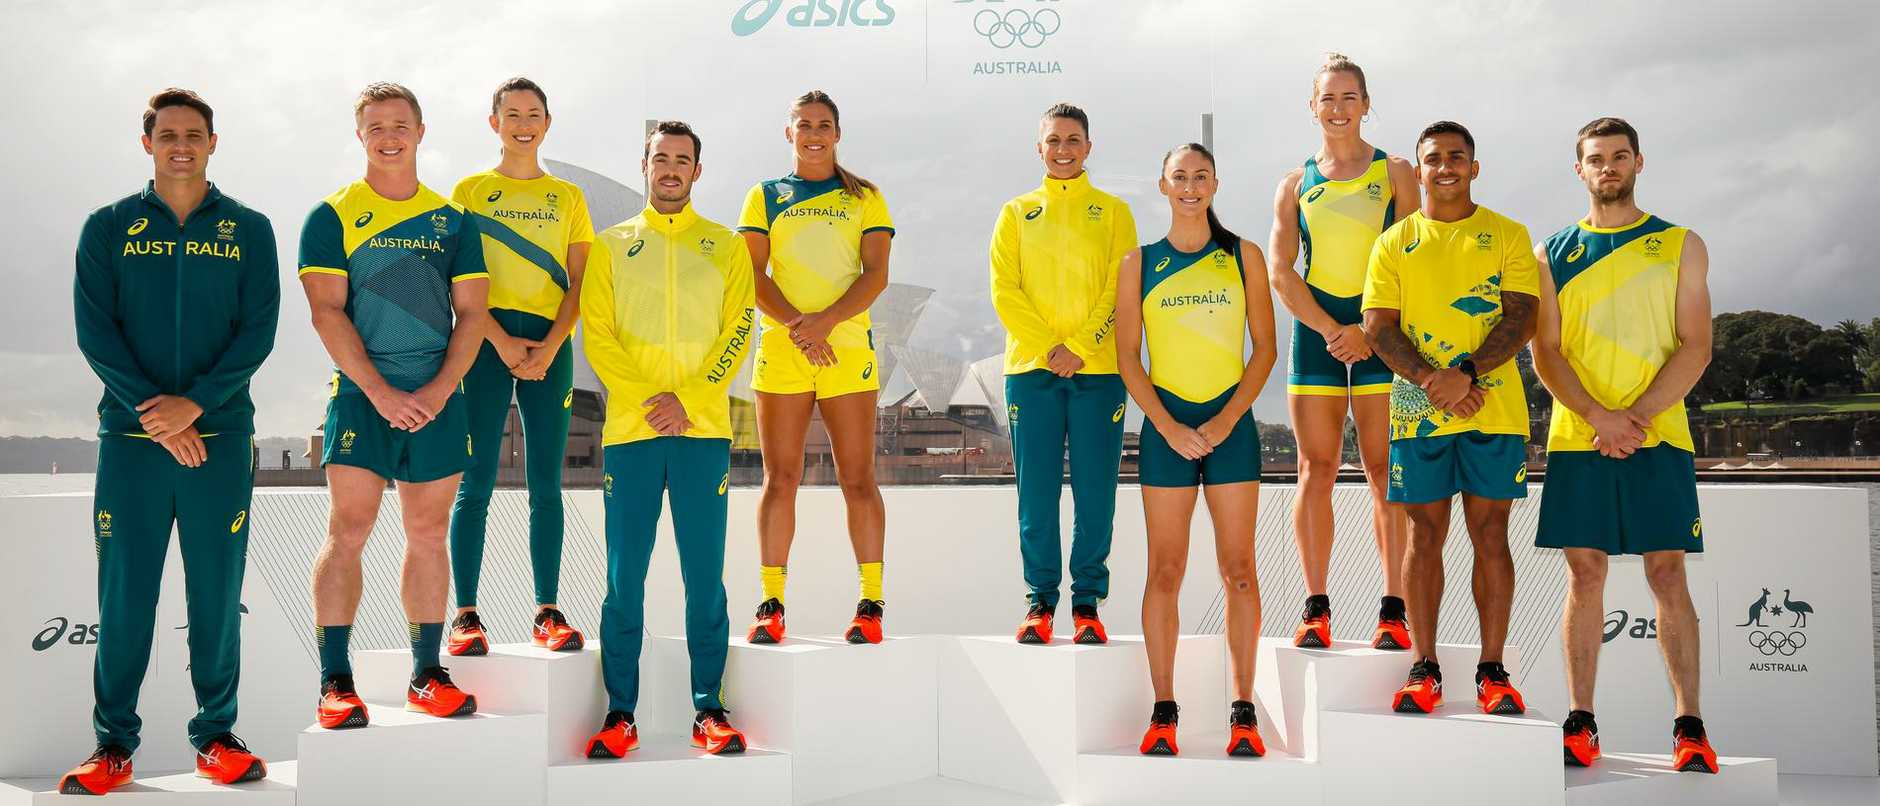 Historic first in our new Olympic uniforms